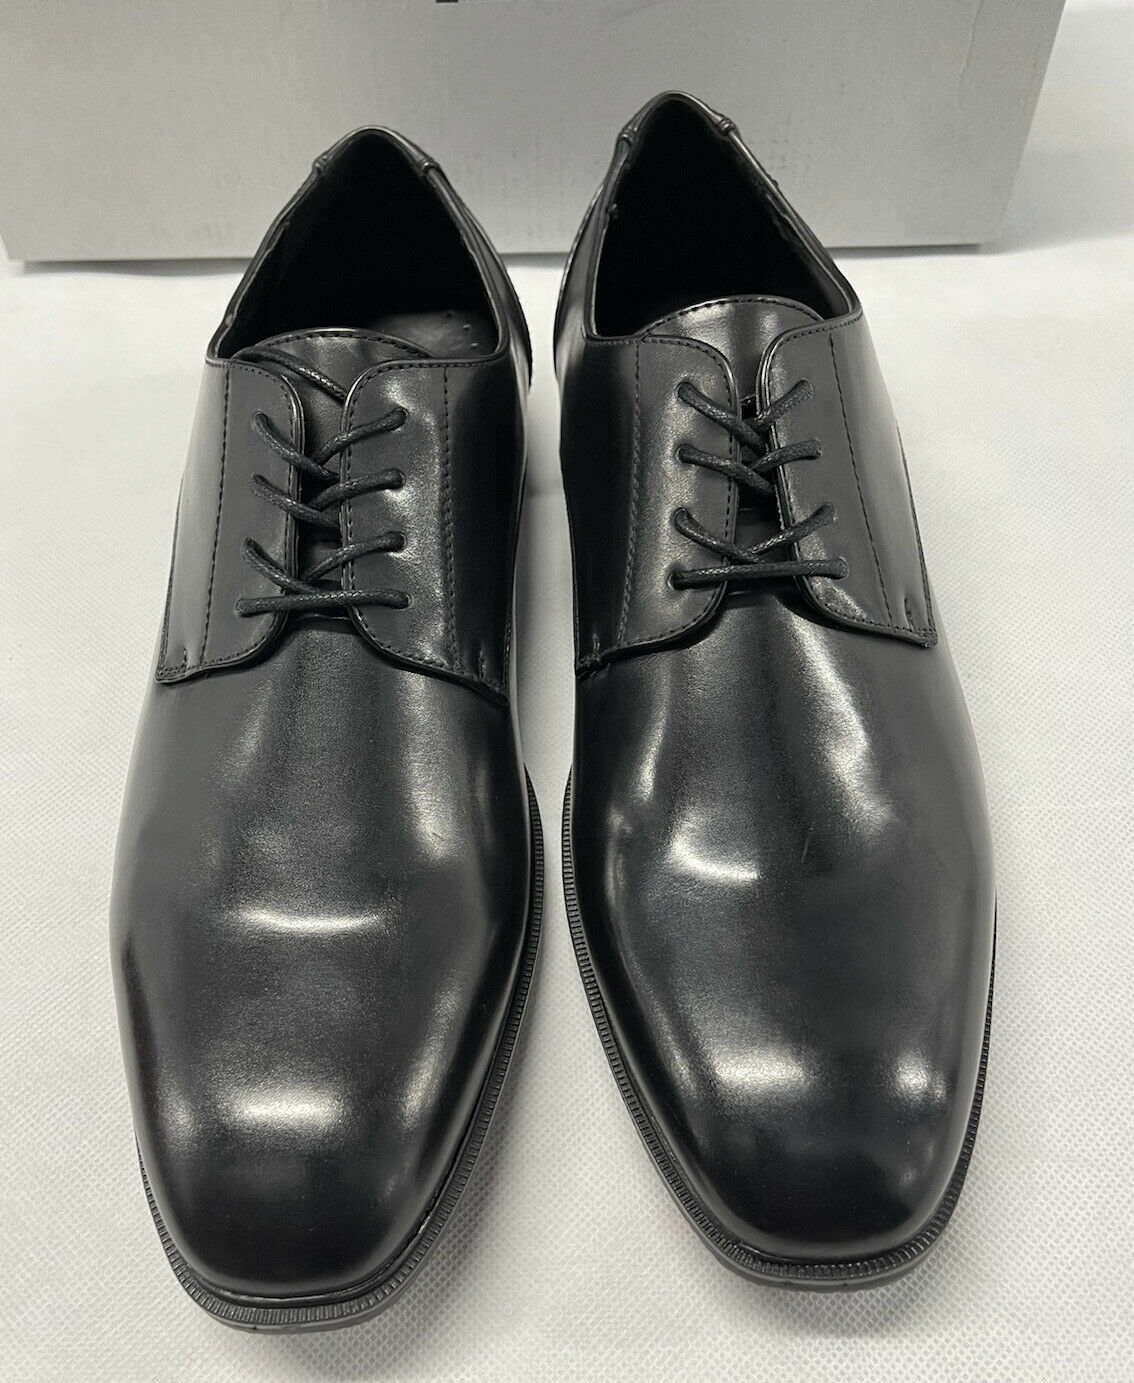 Kenneth Cole Dinner Lace Up Unlisted Dress Shoes Men's Size 10.5